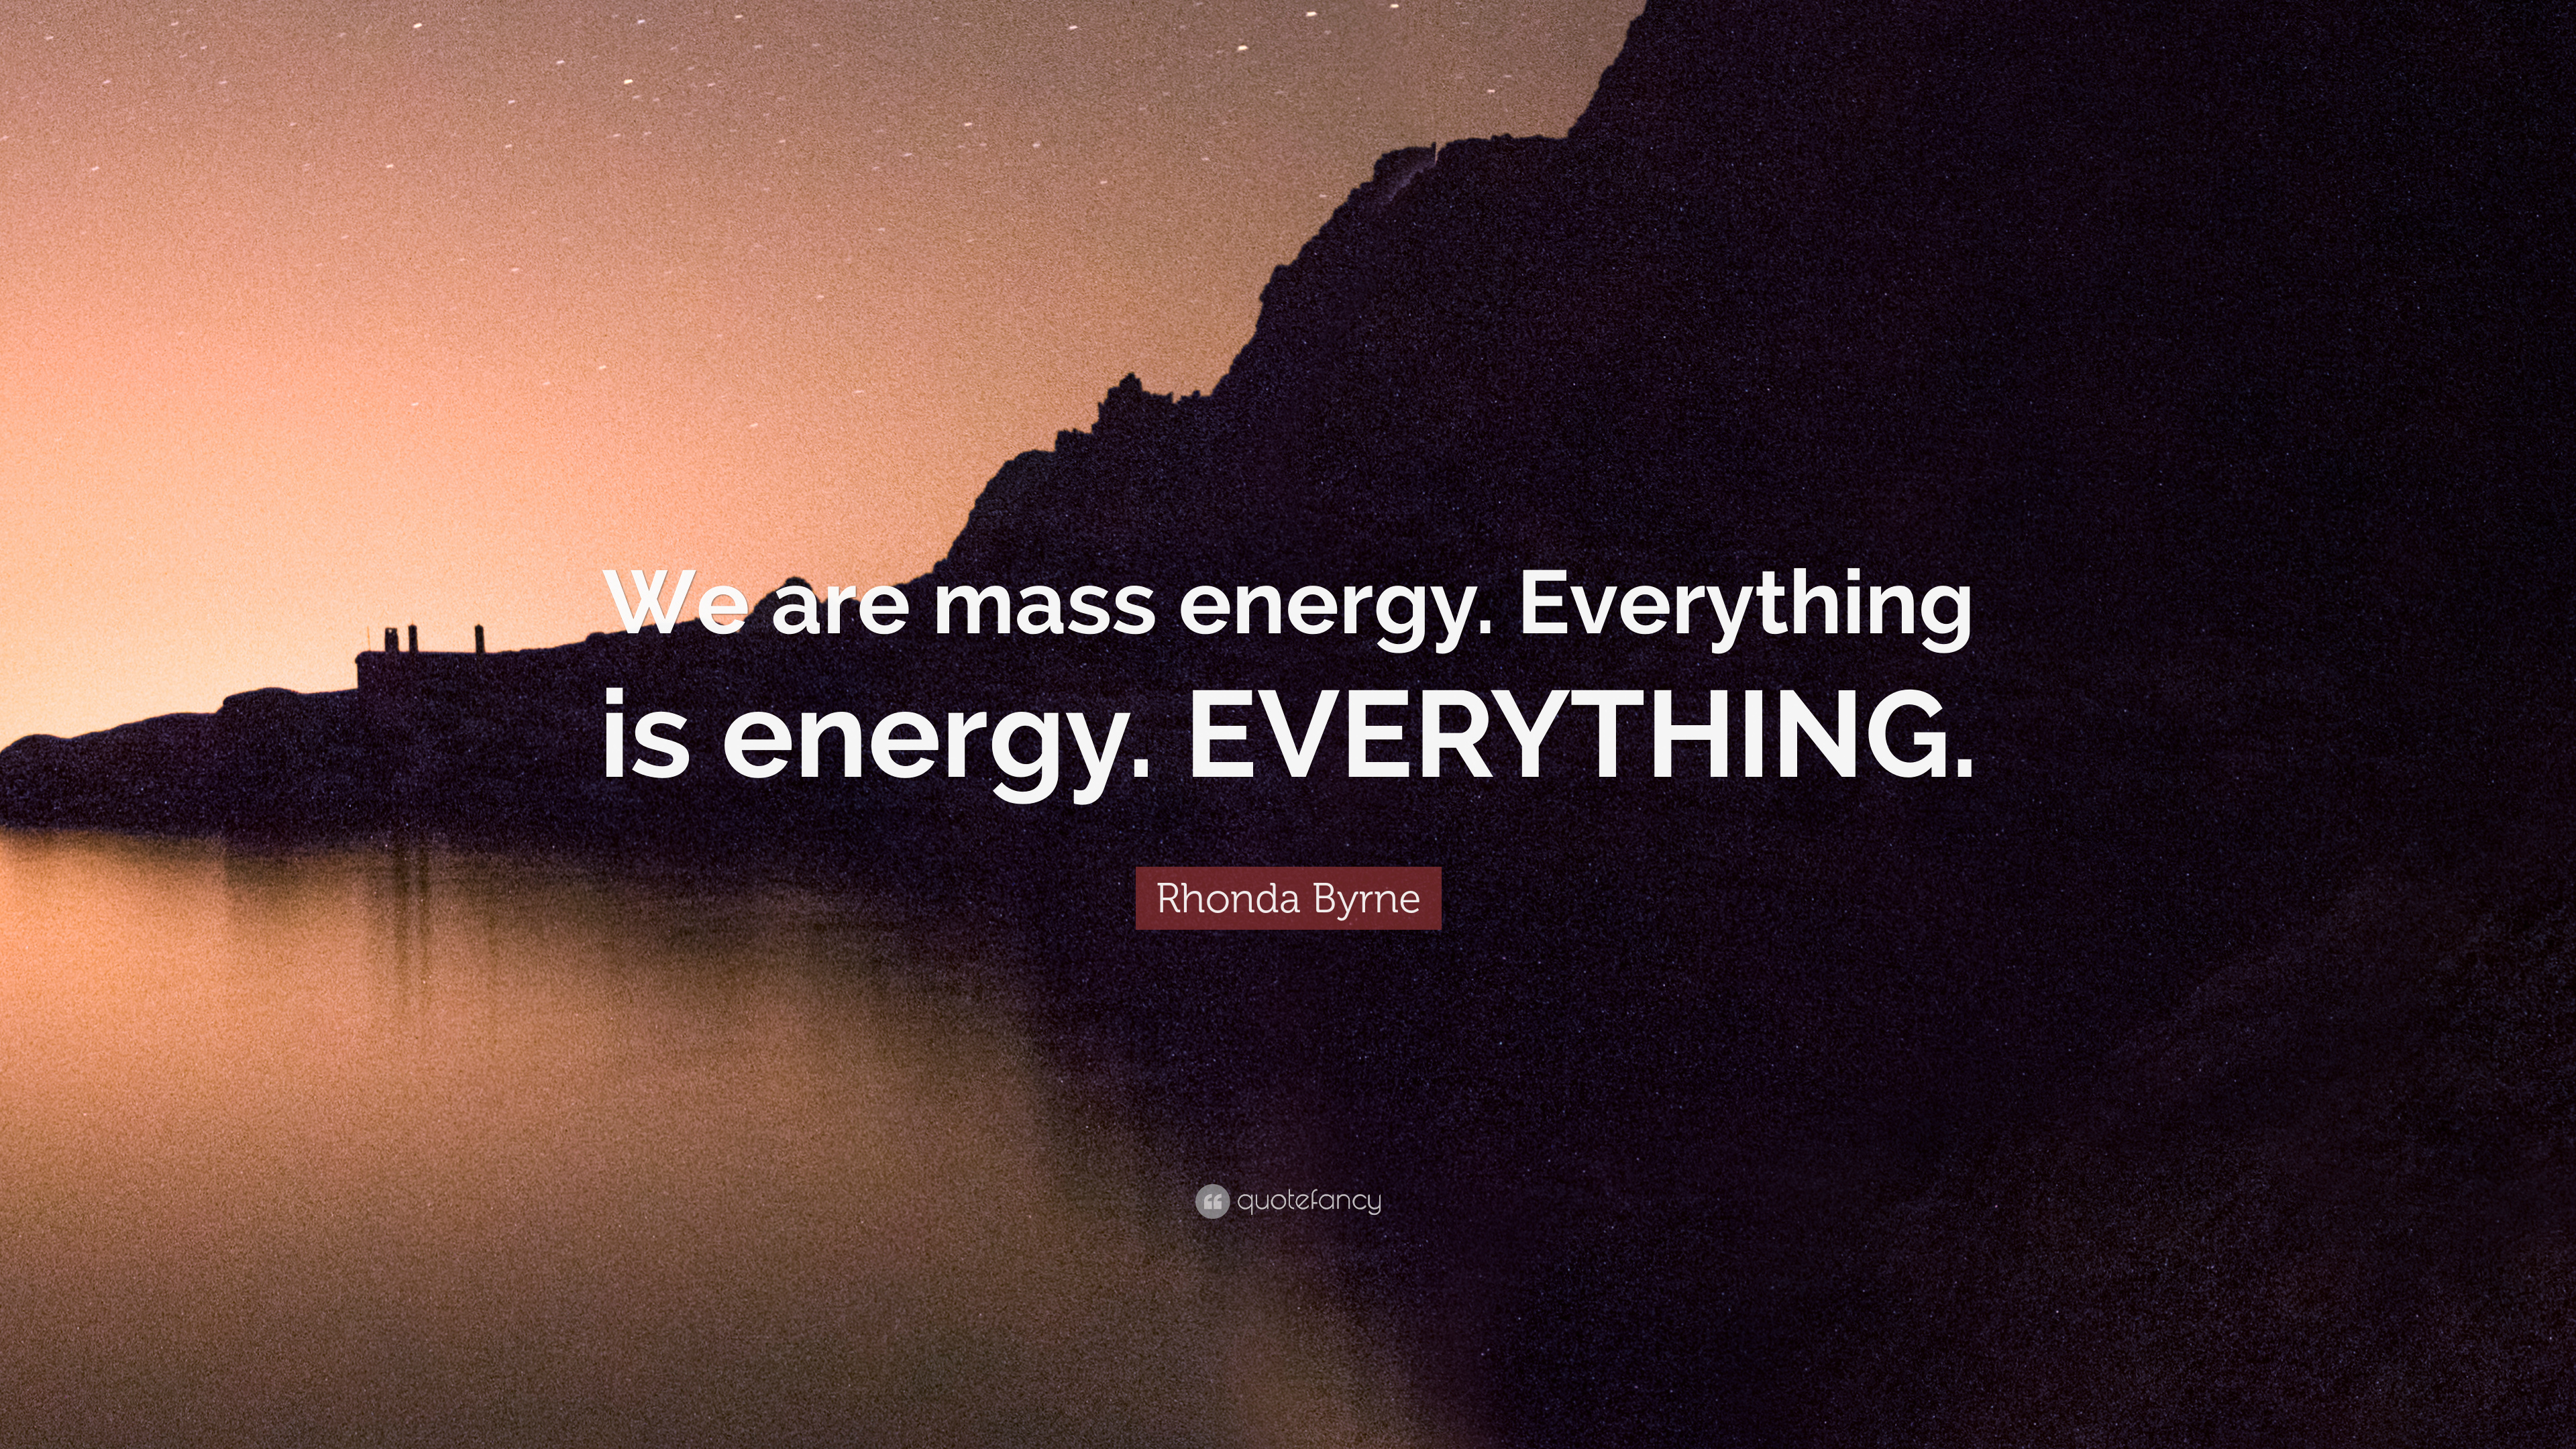 rhonda byrne quote we are mass energy everything is energy